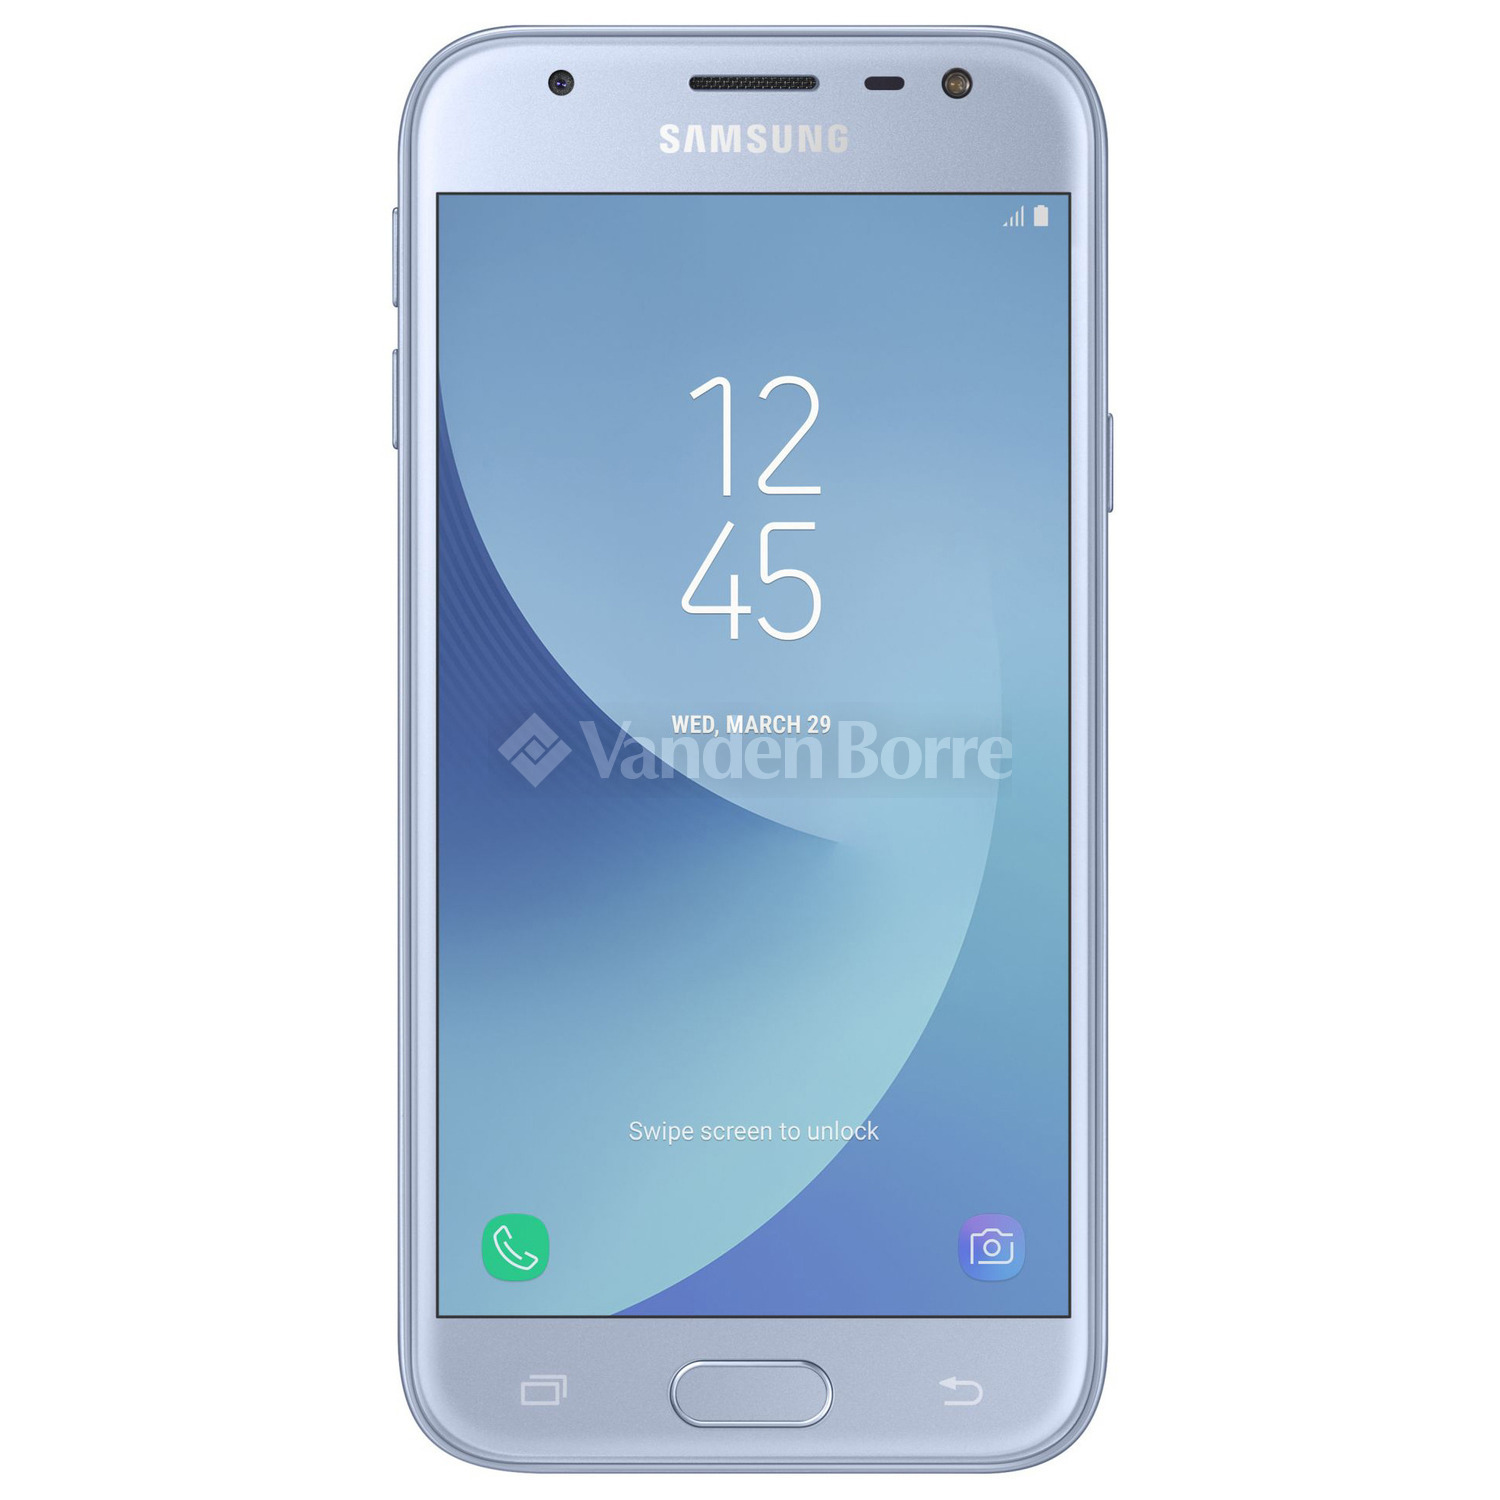 samsung galaxy j3 2017 silver blue chez vanden borre comparez et achetez facilement. Black Bedroom Furniture Sets. Home Design Ideas